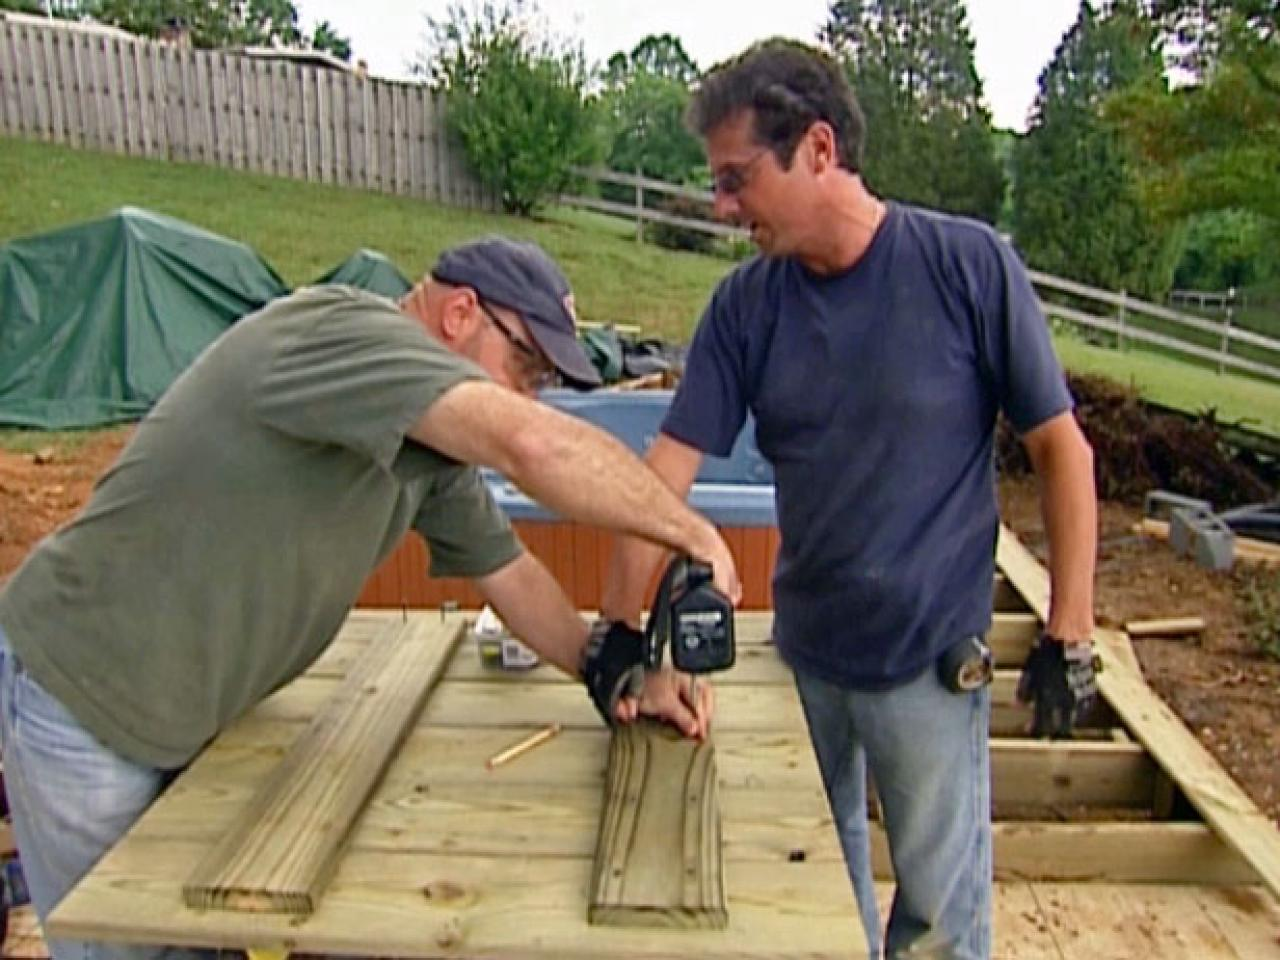 How To Install A Hot Tub On Deck Tos Diy Wiring Step 2